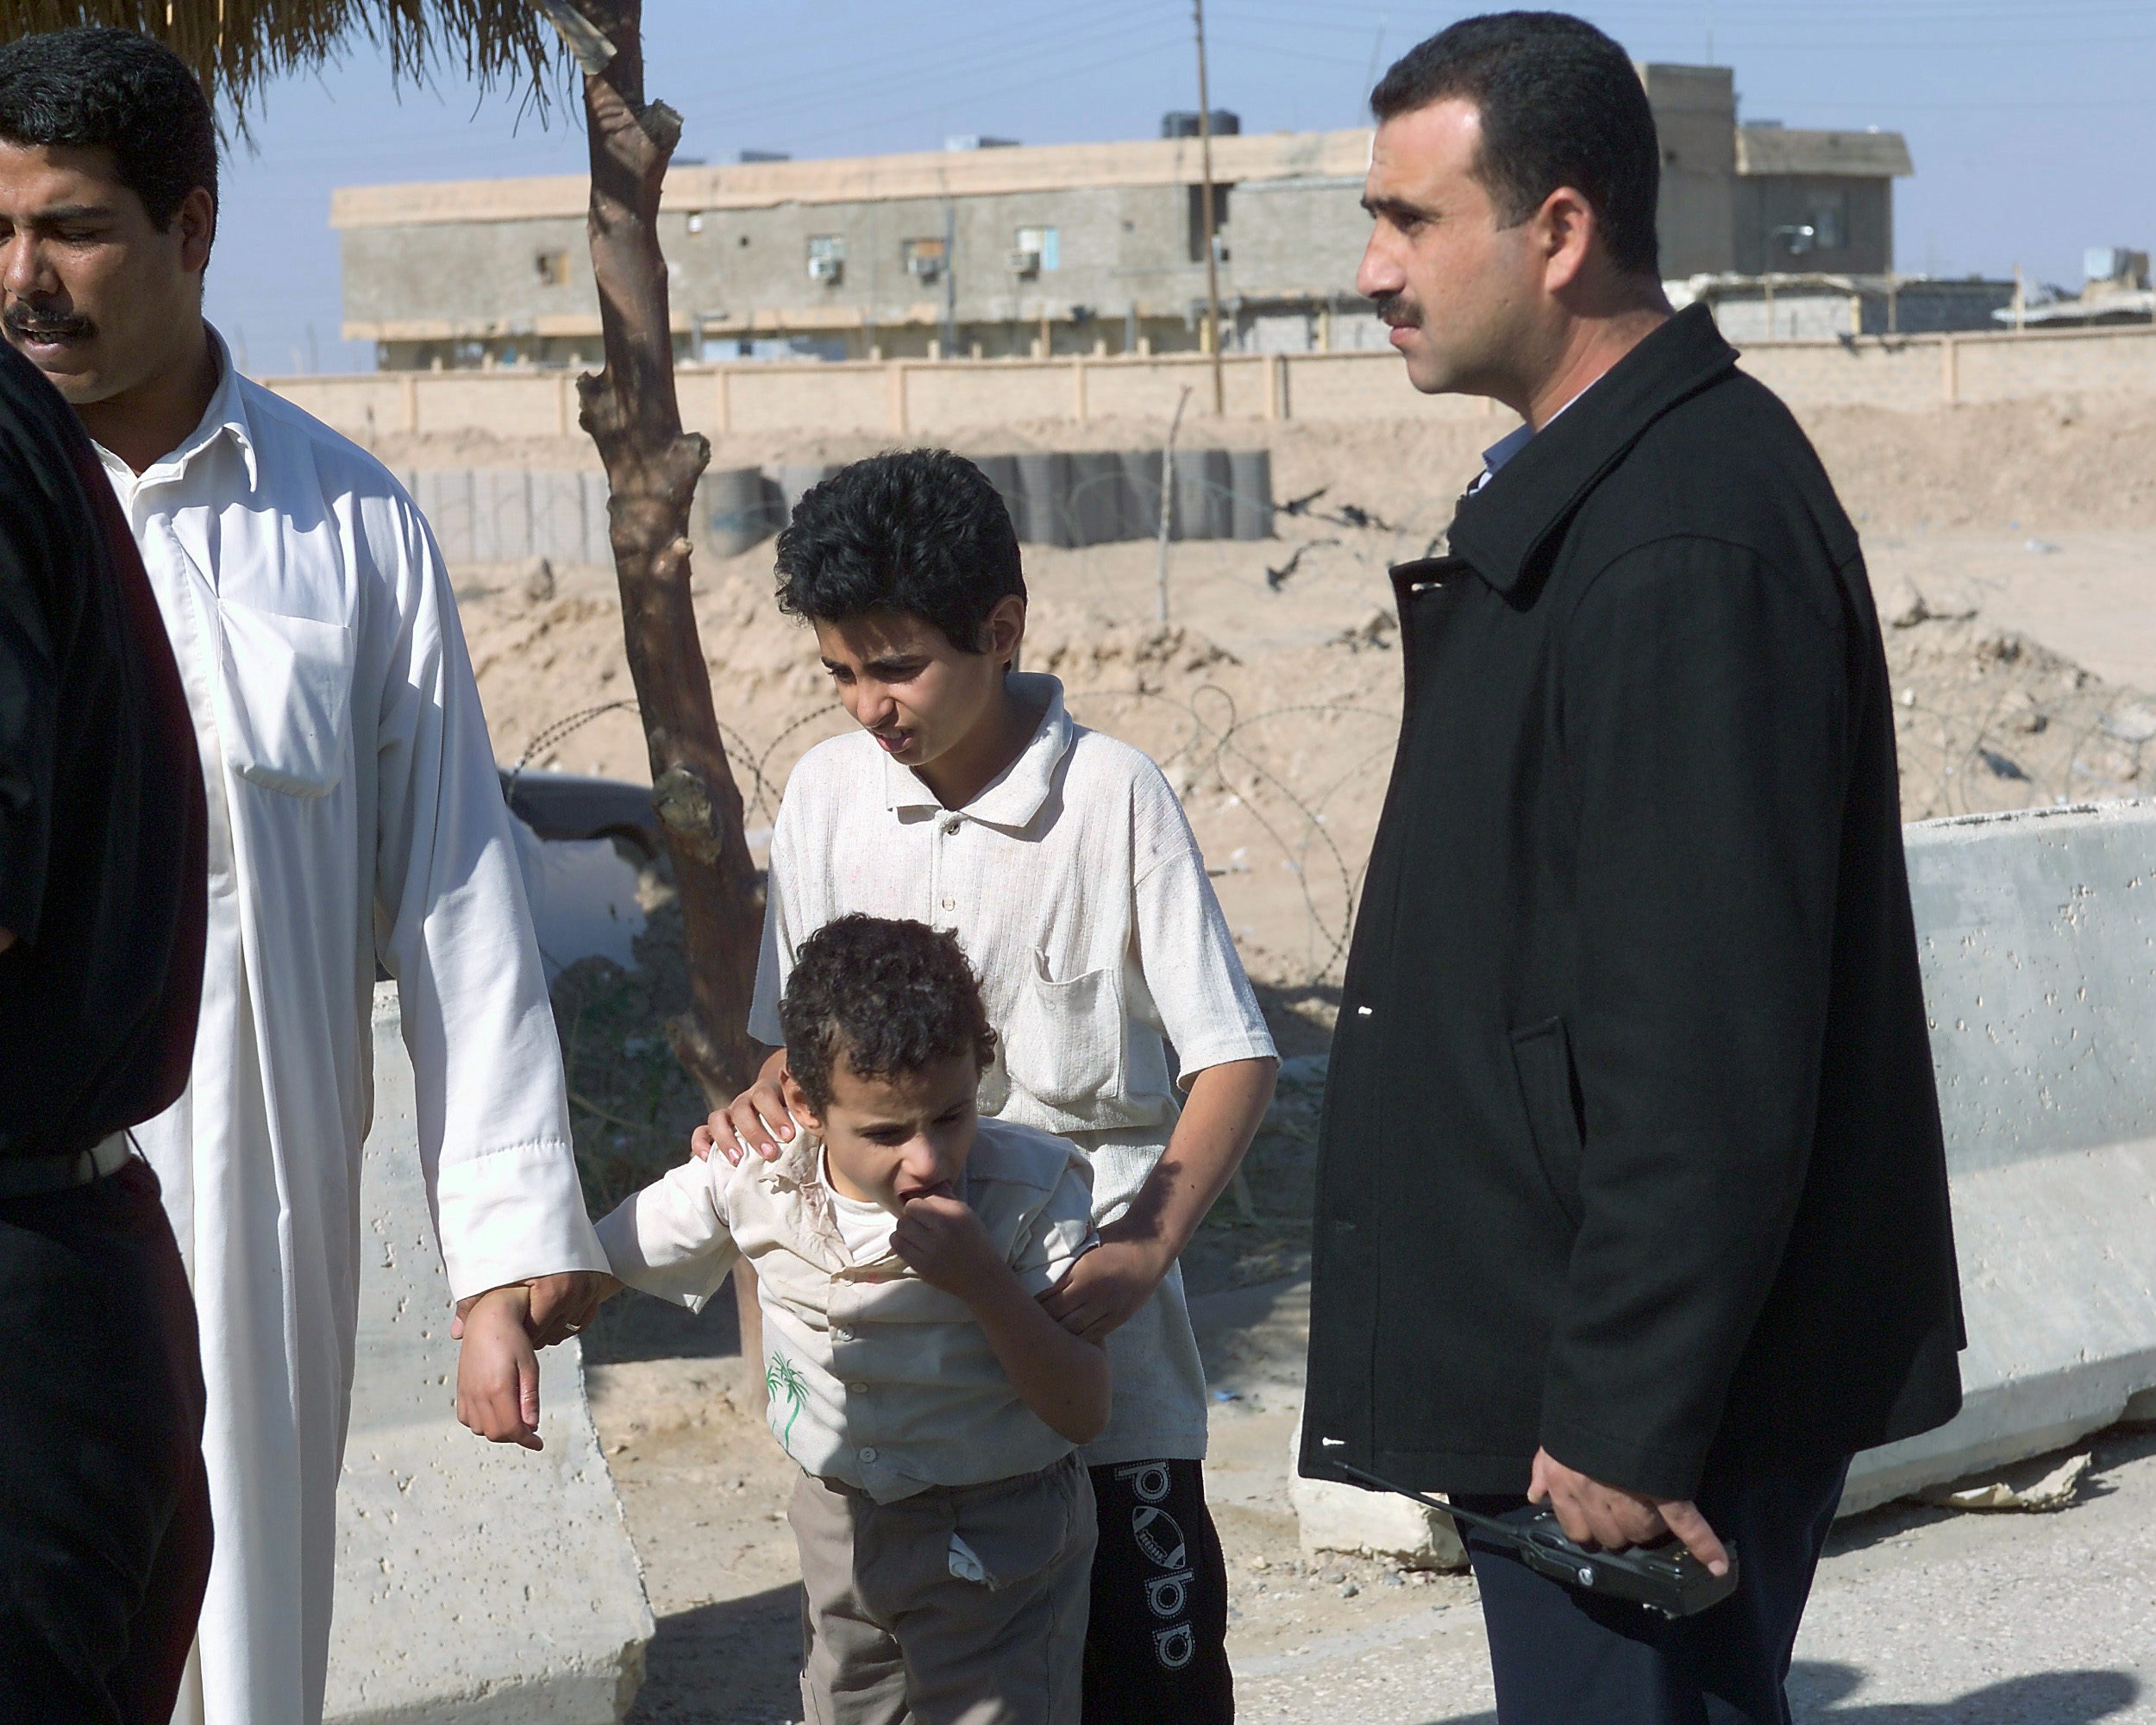 Two Jordanian Medical Doctors (left and right) talk with an Iraqi father (second from left) about his two sons at an Iraqi Army controlled humanitarian assistance site on Nov. 20, 2004, in the city of Fallujah, Al Anbar Province, Iraq. The younger son (center) is sick and will be taken to a Jordanian operated hospital by an armed military convoy. Iraqi civilians are able to come to this site to receive humanitarian assistance at the conclusion of the week-long battle by Multinational Forces against insurgents in the city of Fallujah, during Operation Iraqi Freedom. (U.S. Marine Corps photo by CPL. Theresa M. Medina) (Released)